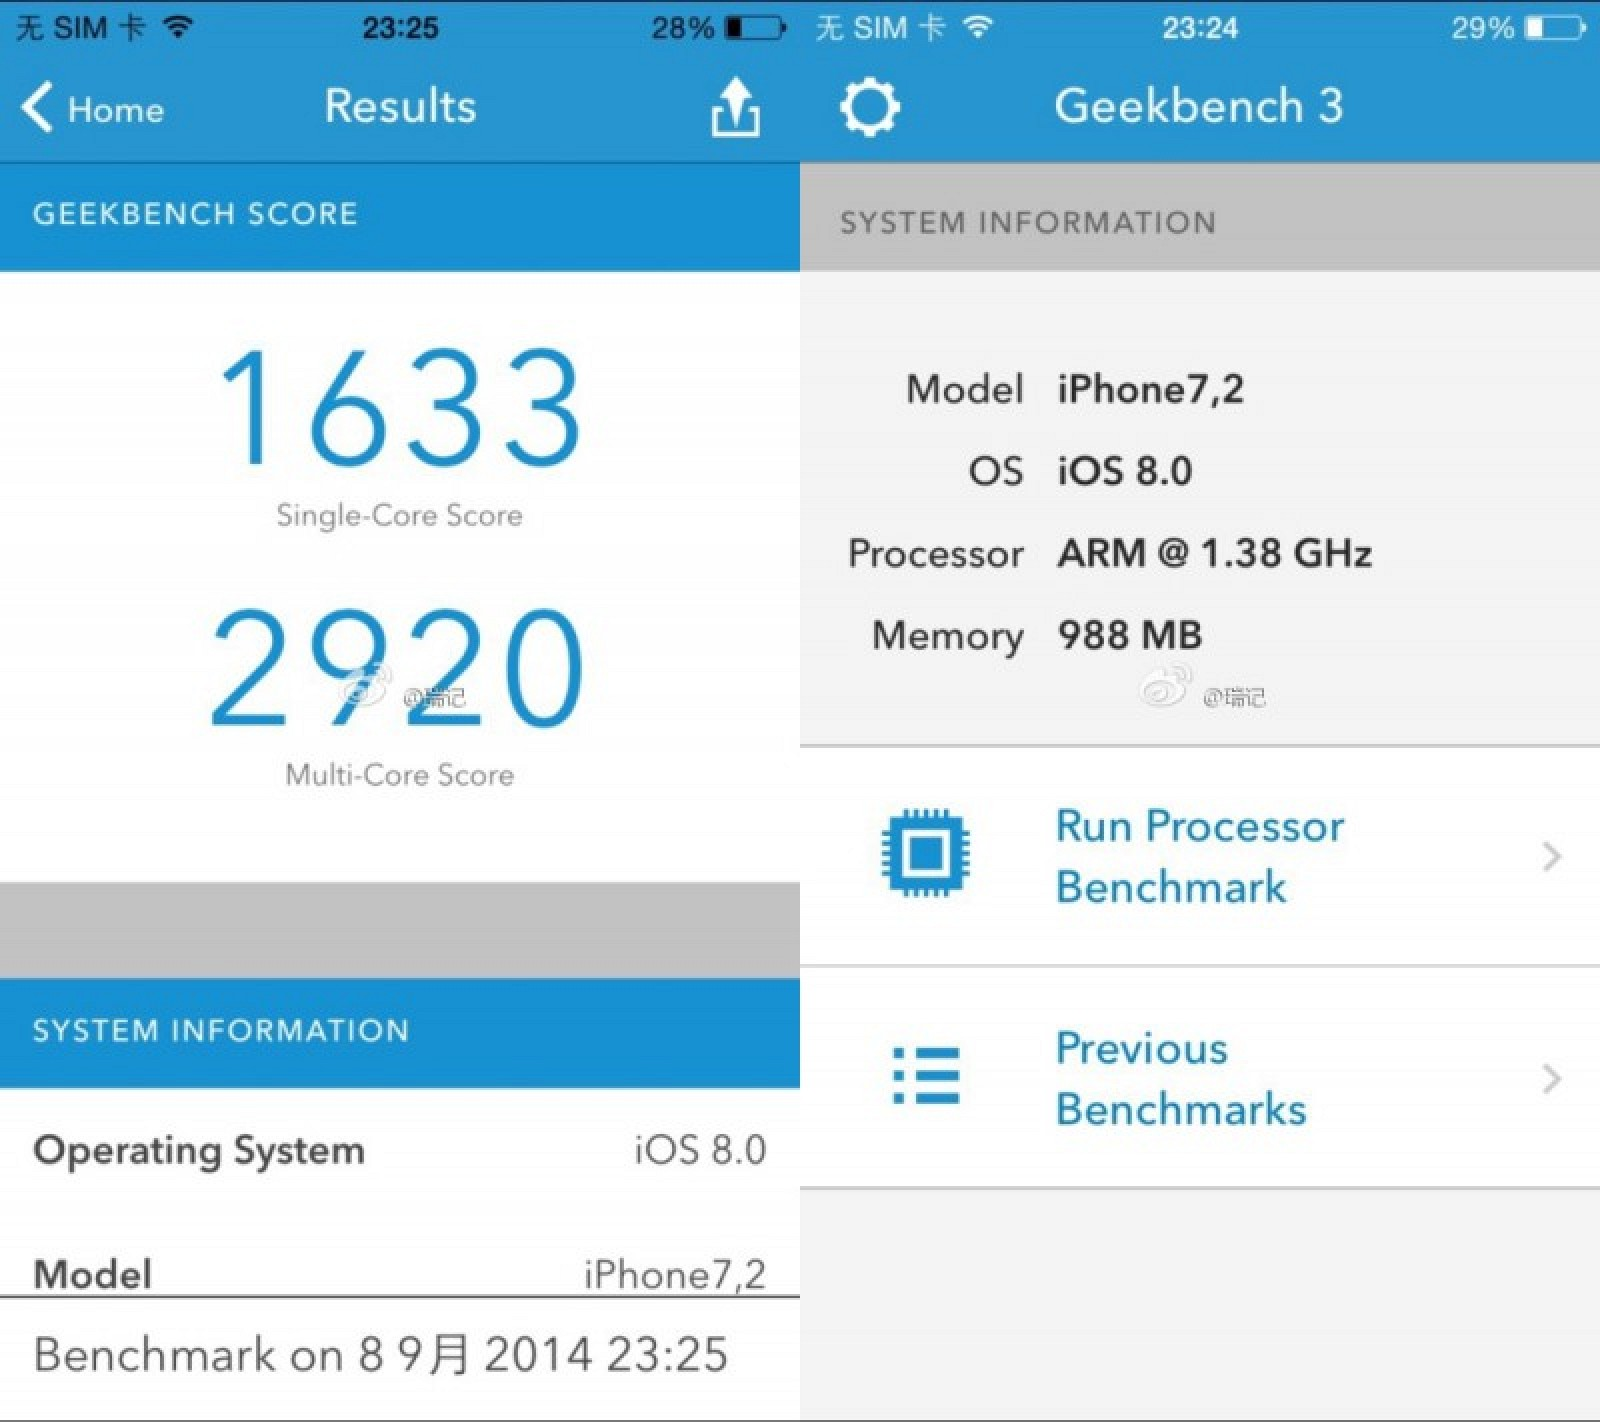 Post Macos Os X Geekbench Benchmarks: Alleged IPhone 6 Geekbench Results Reveal 1.4 GHz Dual